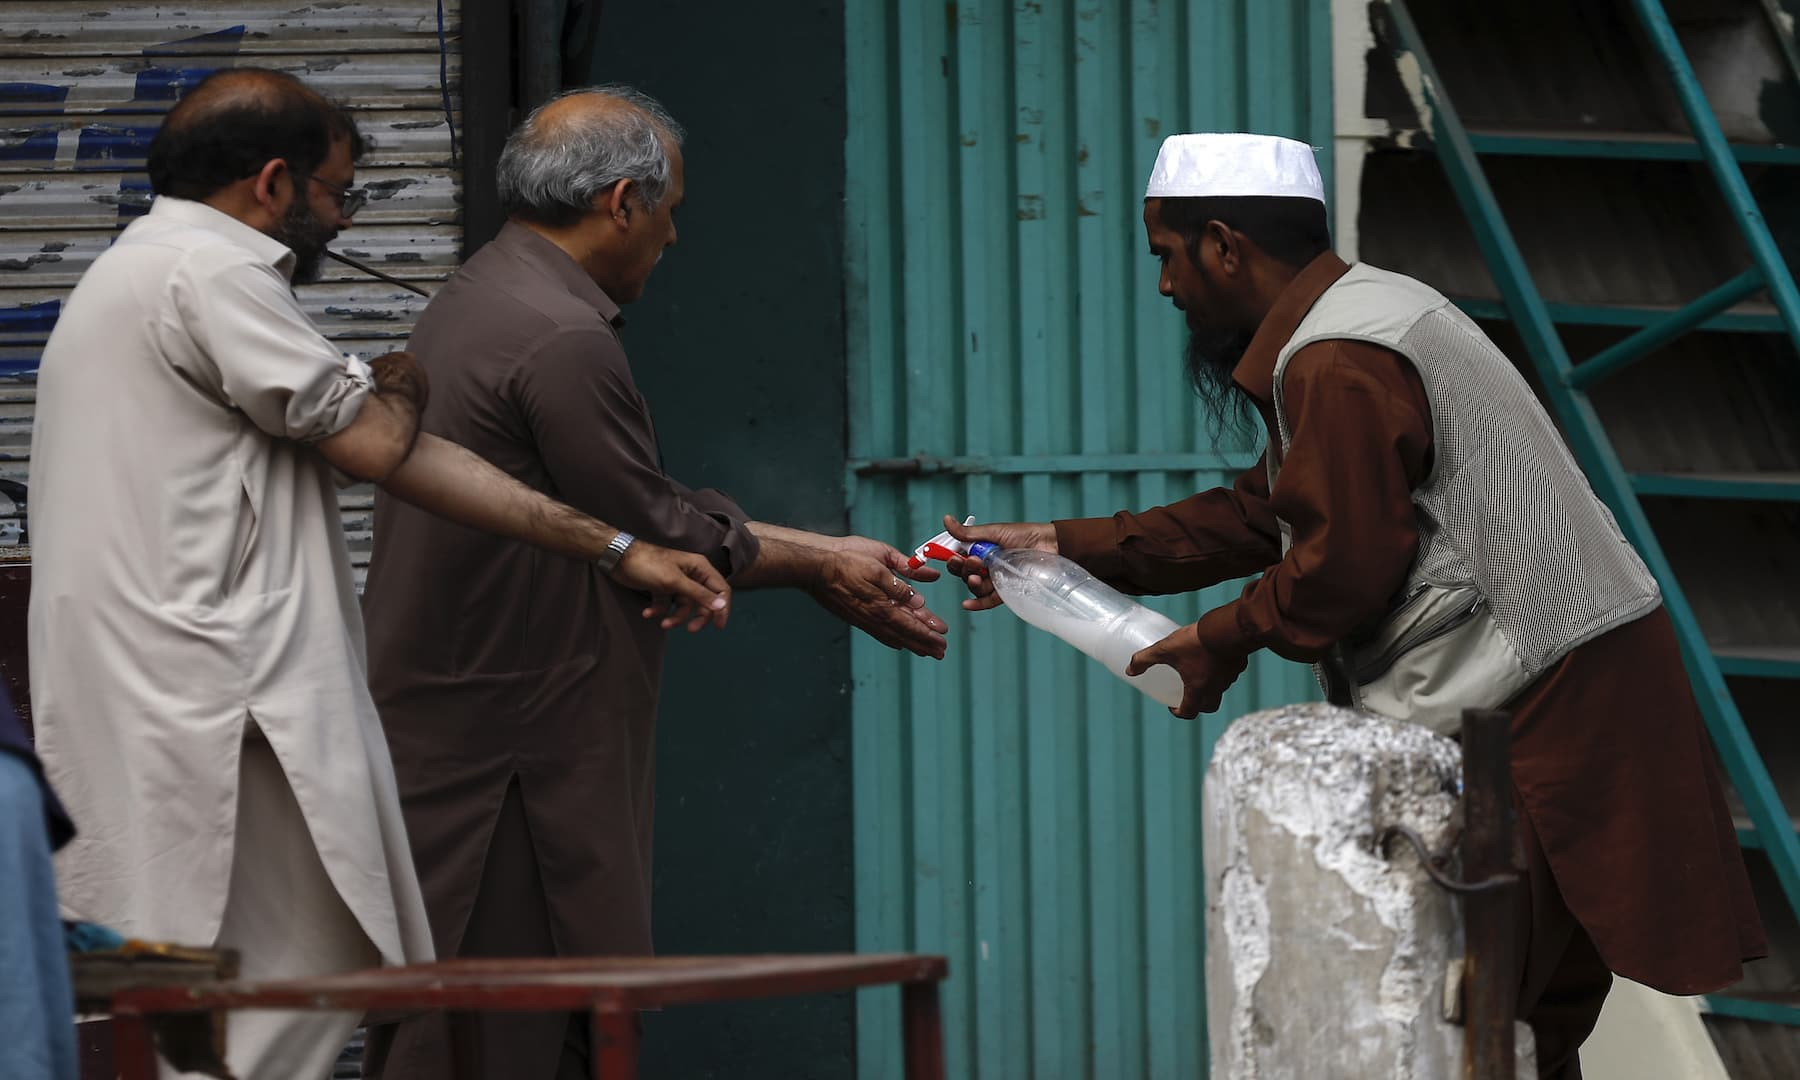 A volunteer sprays disinfectant on the hands of worshippers to help curb the spread of coronavirus outside a mosque in Rawalpindi on Monday. — AP